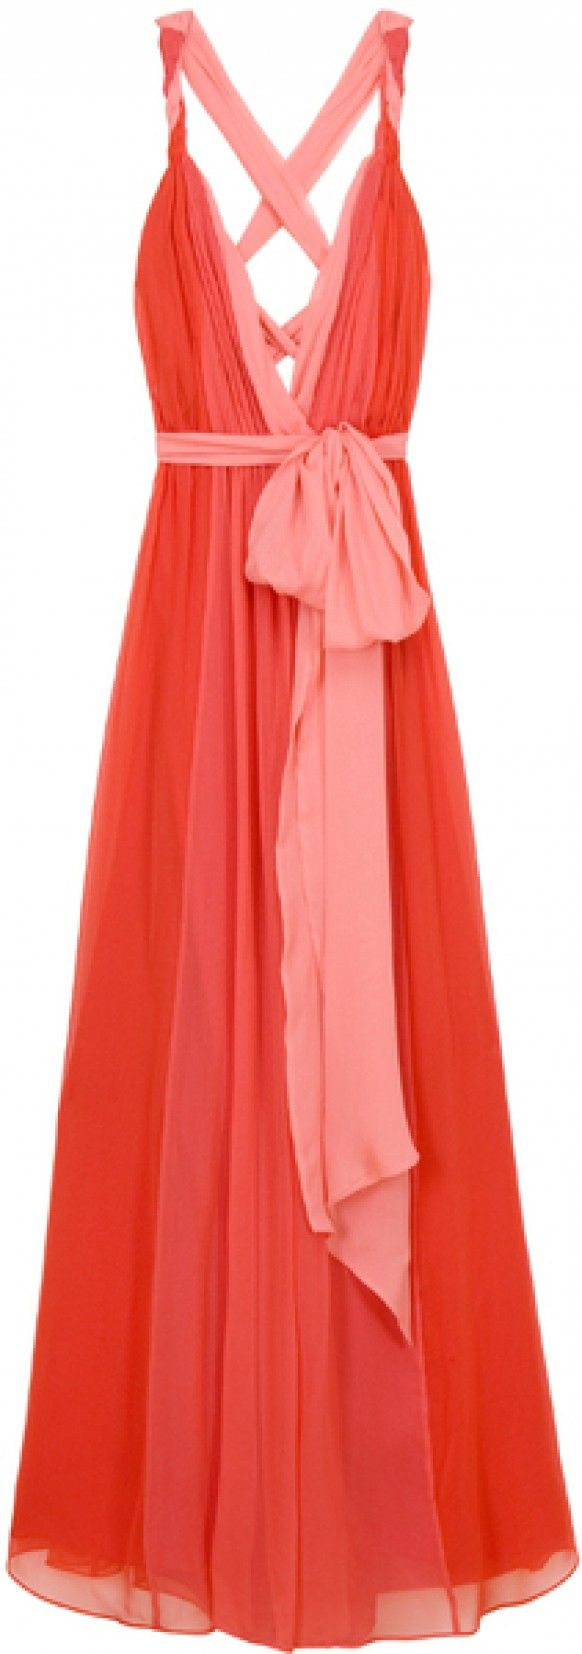 2013 Bridesmaid Dresses